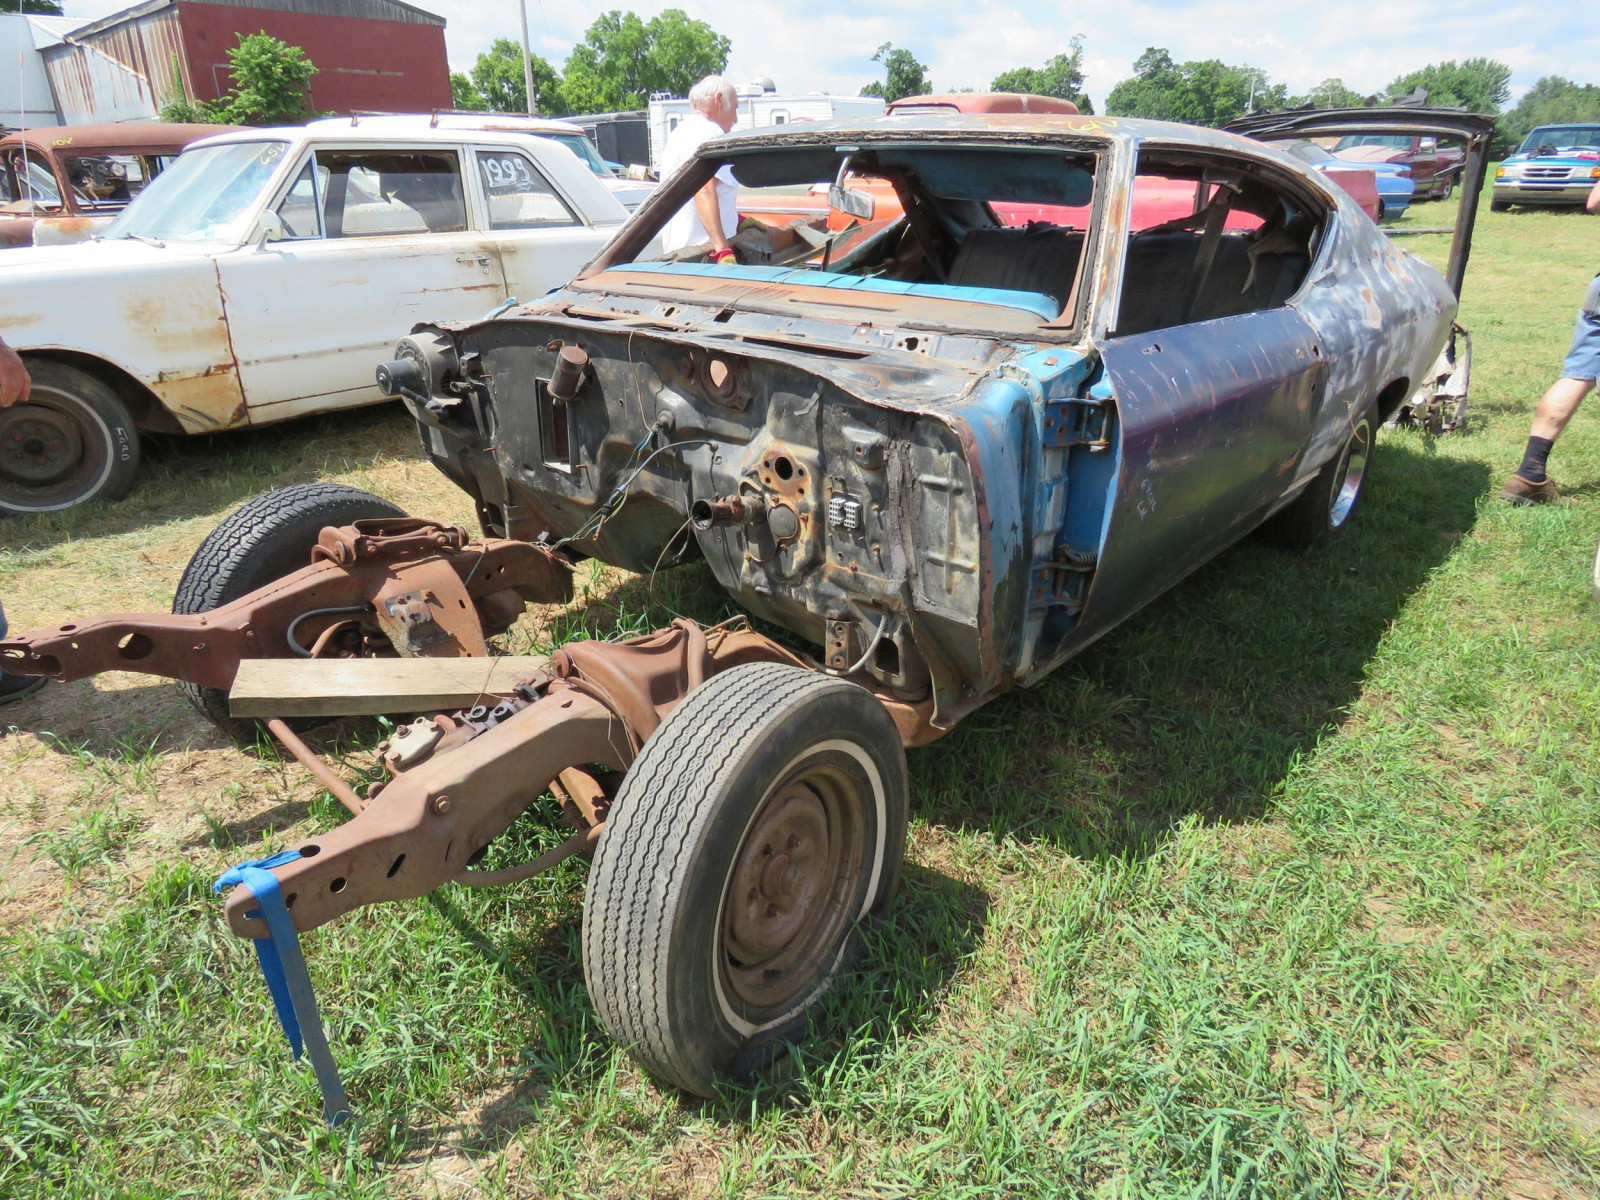 1969 Chevrolet Chevelle Rolling Body for Project or Parts - Image 1